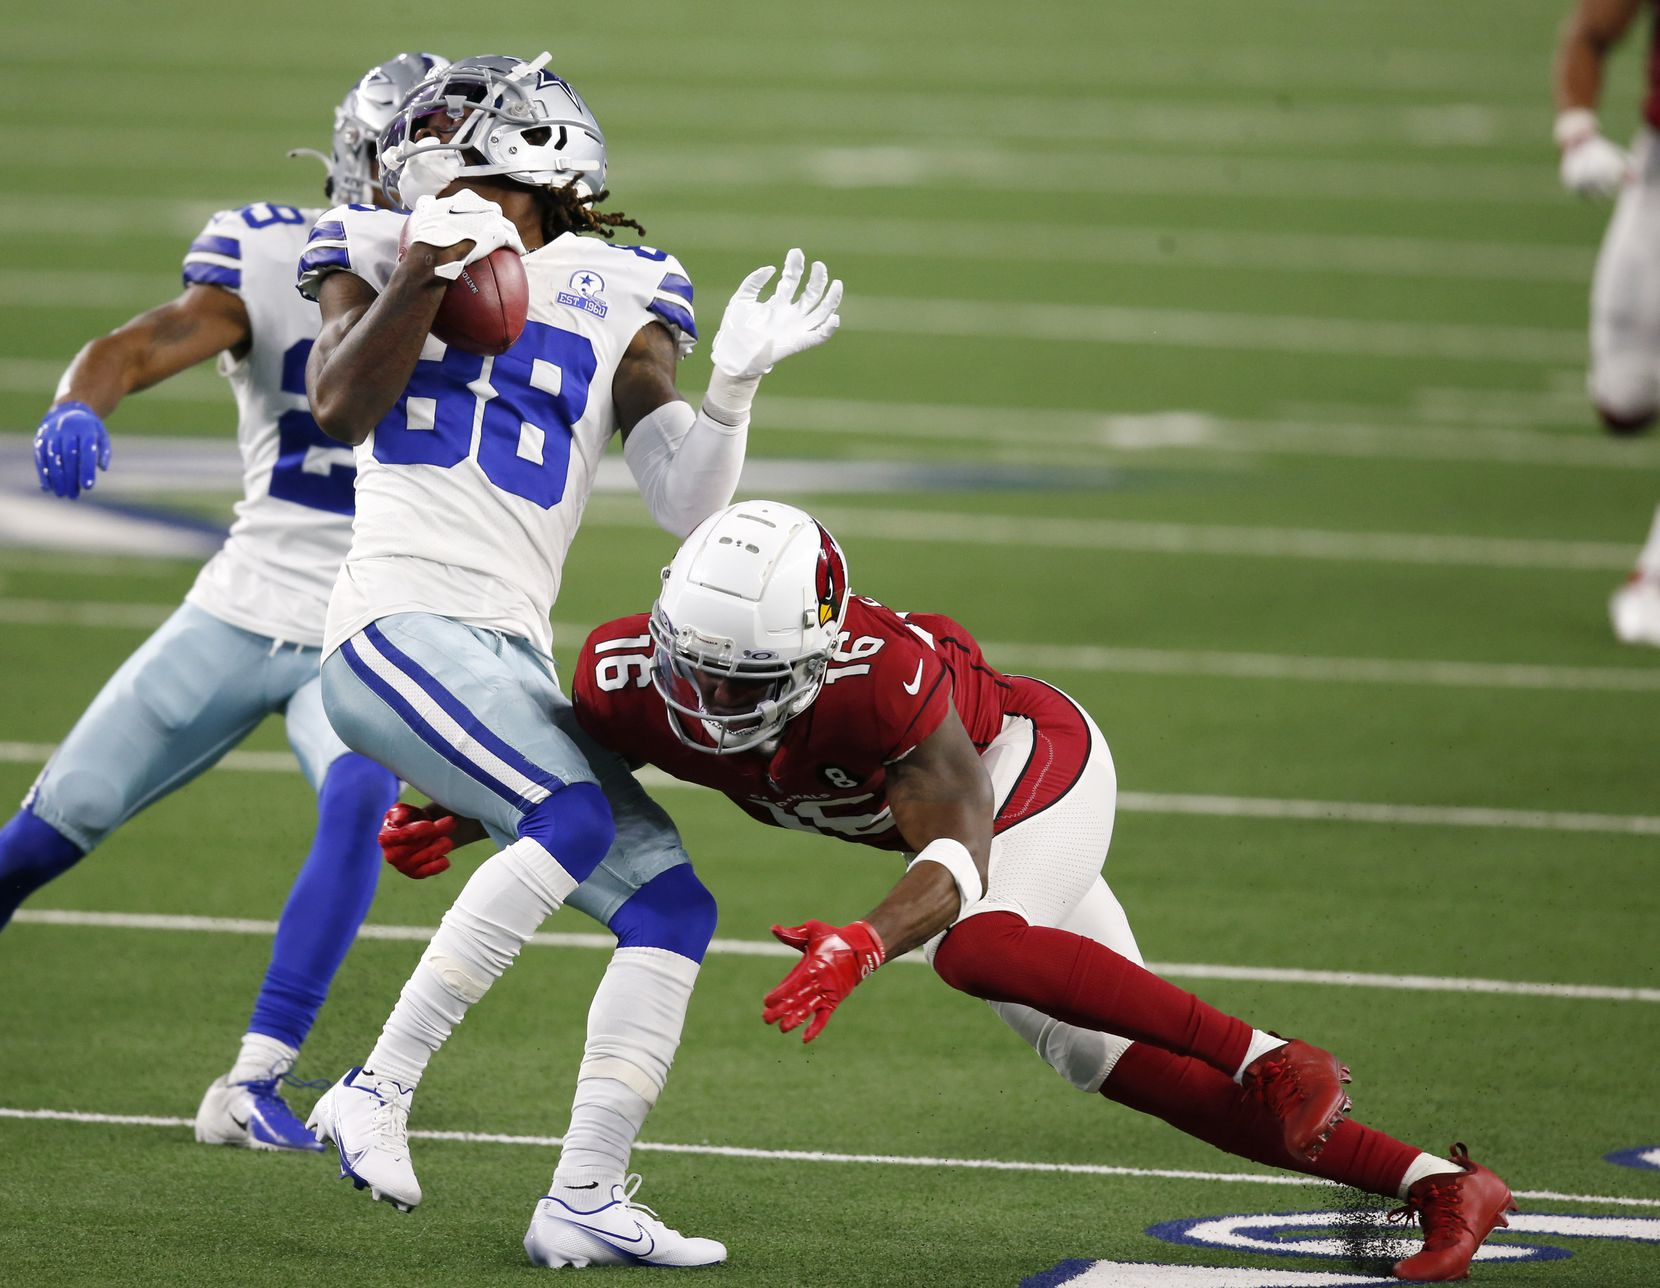 Dallas Cowboys wide receiver CeeDee Lamb (88) is tackled by Arizona Cardinals wide receiver Trent Sherfield (16) on a punt return during the first quarter of play at AT&T Stadium on Monday, October 19, 2020 in Arlington, Texas. (Vernon Bryant/The Dallas Morning News)